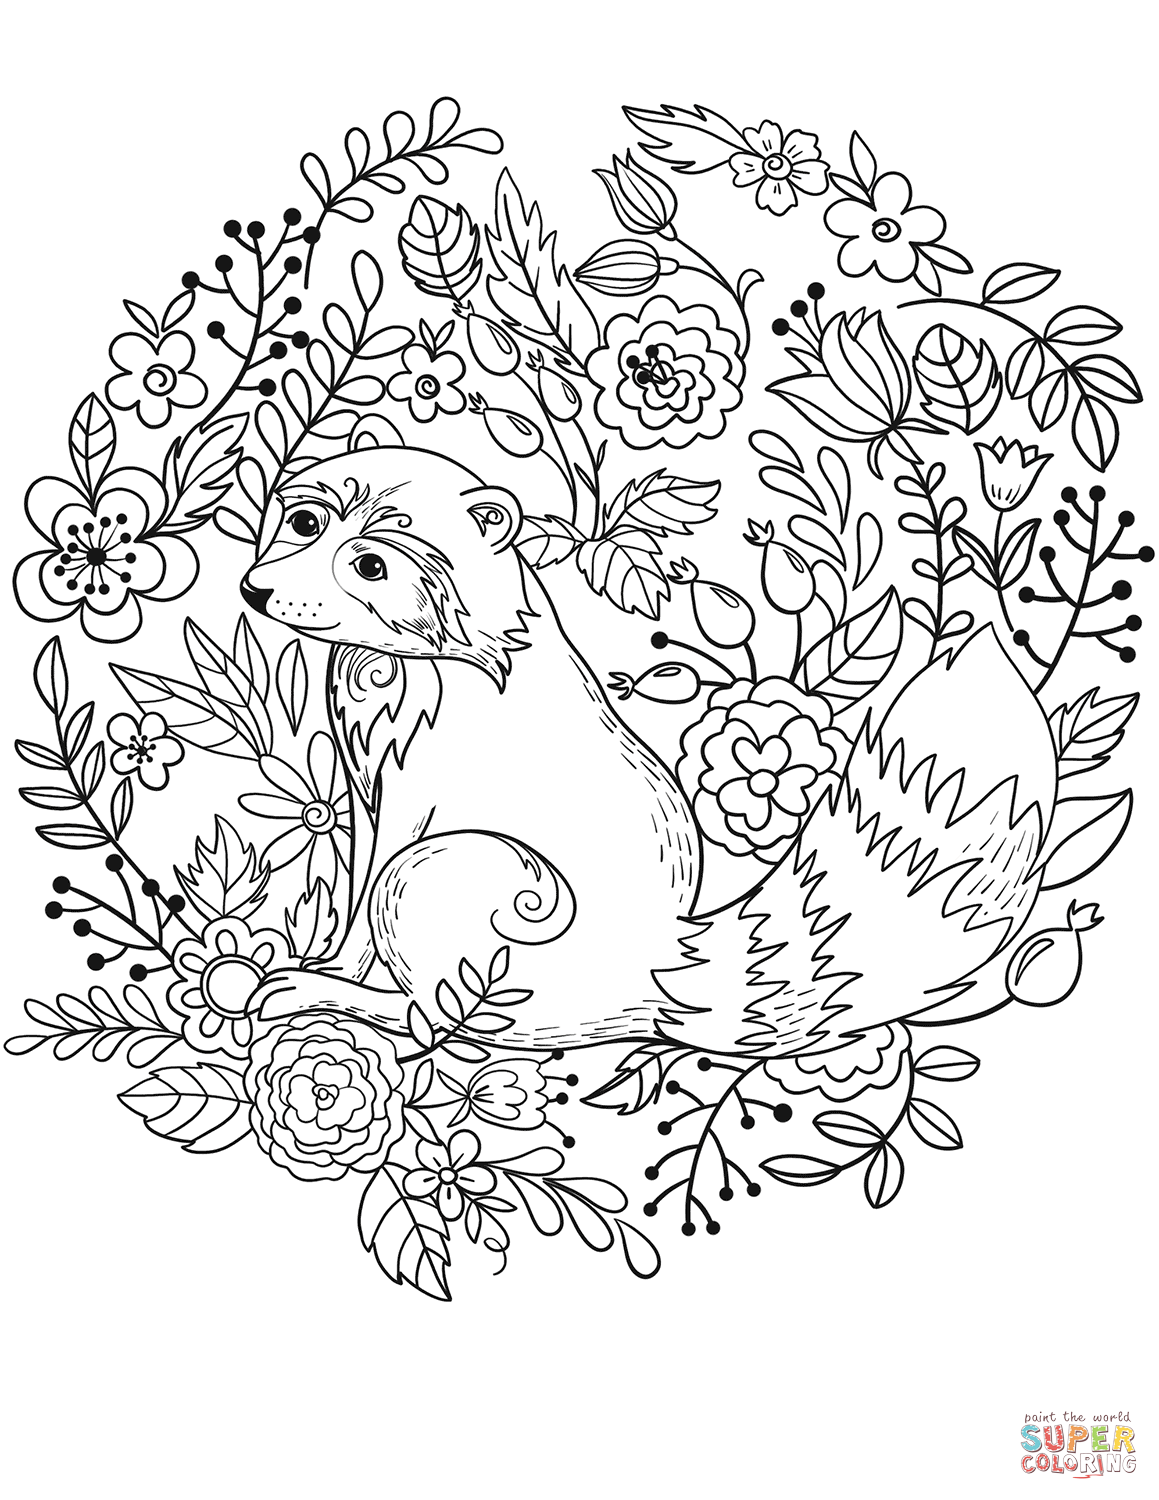 Related image | Animal coloring pages, Coloring pages ...